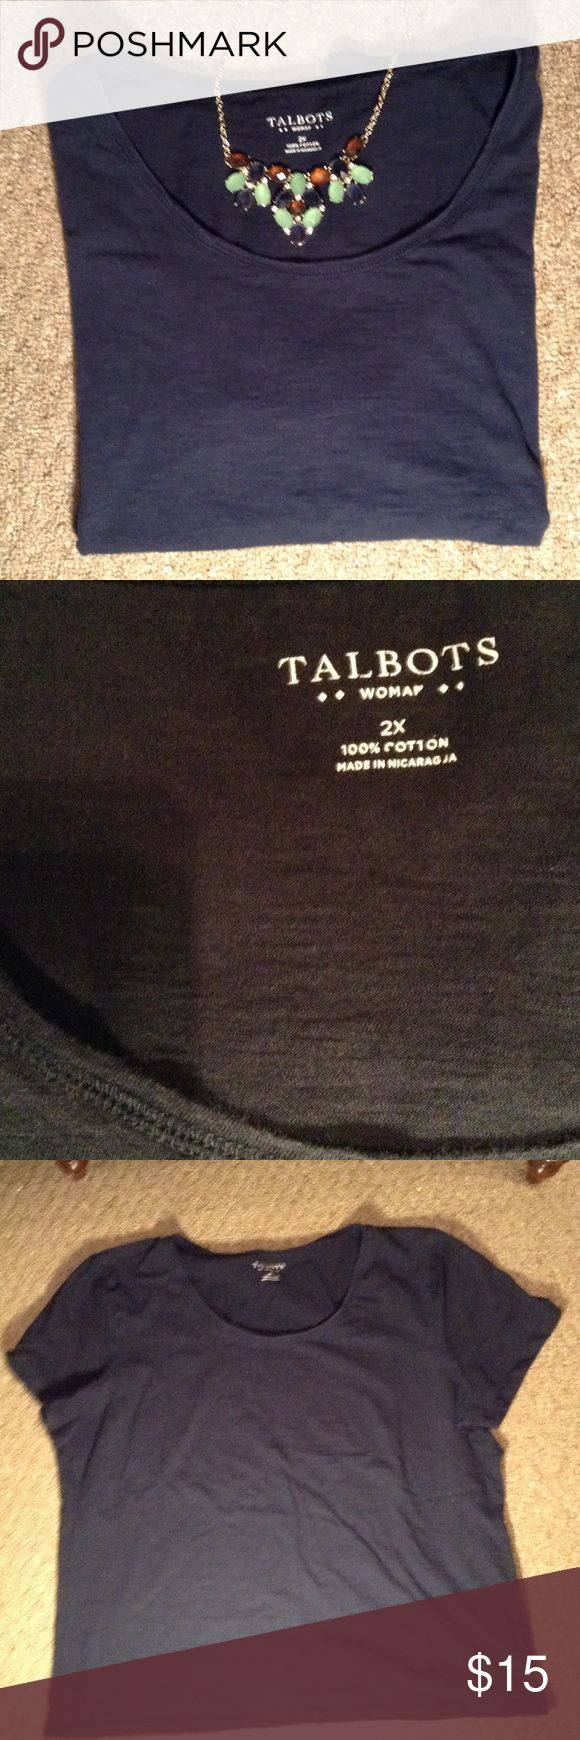 Talbots Navy Tee Perfect tee to go with anything! Dress up or down! Worn many times, fabric does show wear, but has plenty of life still in it. Open to reasonable offers! Talbots Tops Tees - Short Sleeve